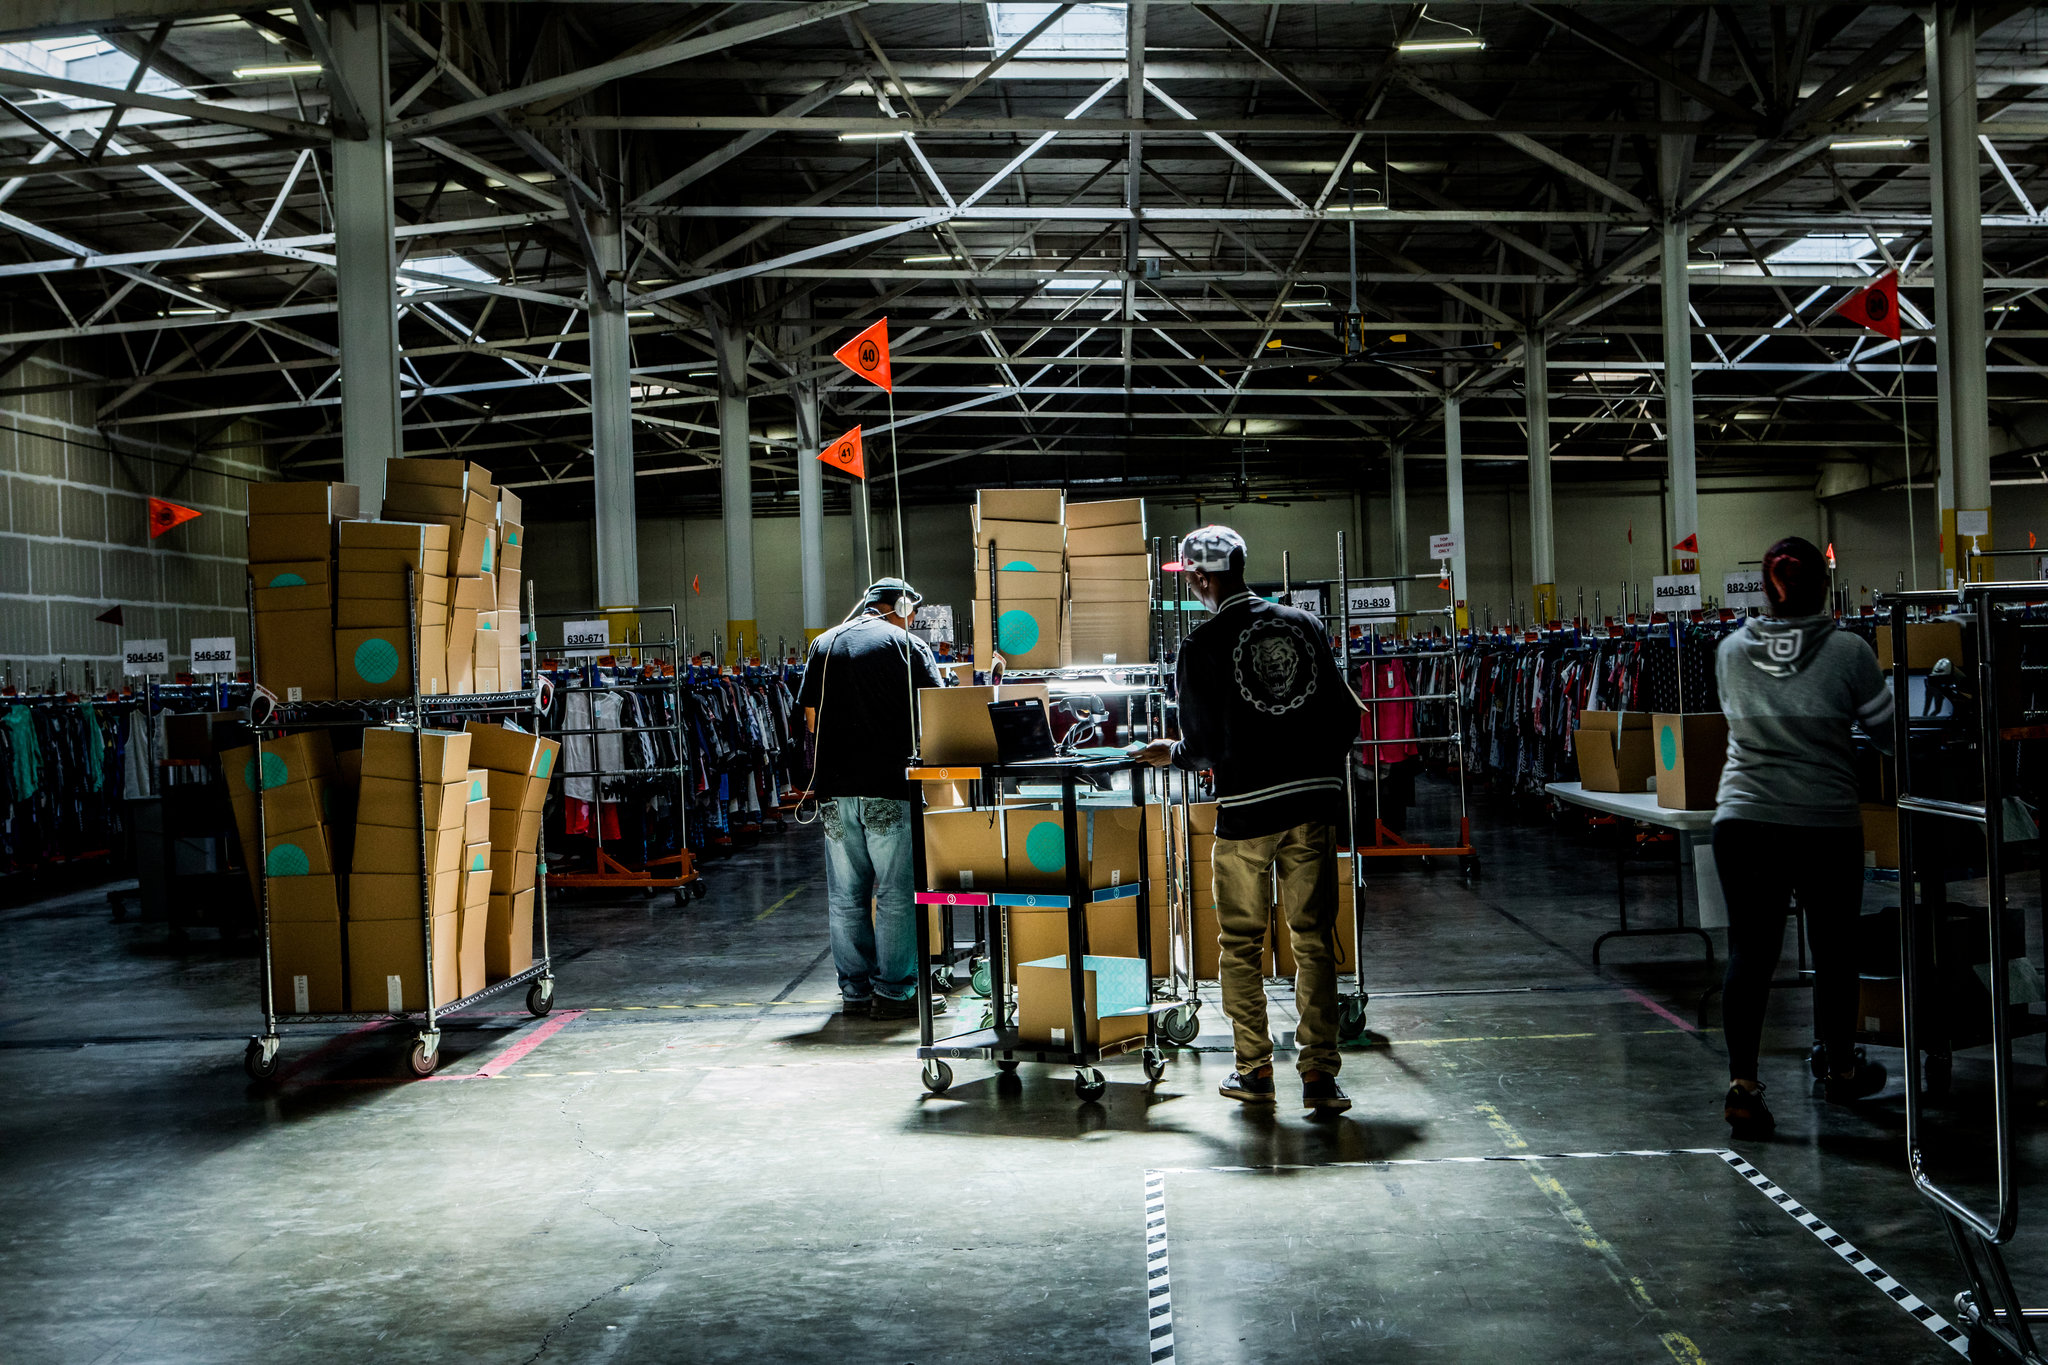 A Stitch Fix warehouse in San Francisco. The company relies on algorithms to help personalize shipments to customers.  CreditChristie Hemm Klok for The New York Times